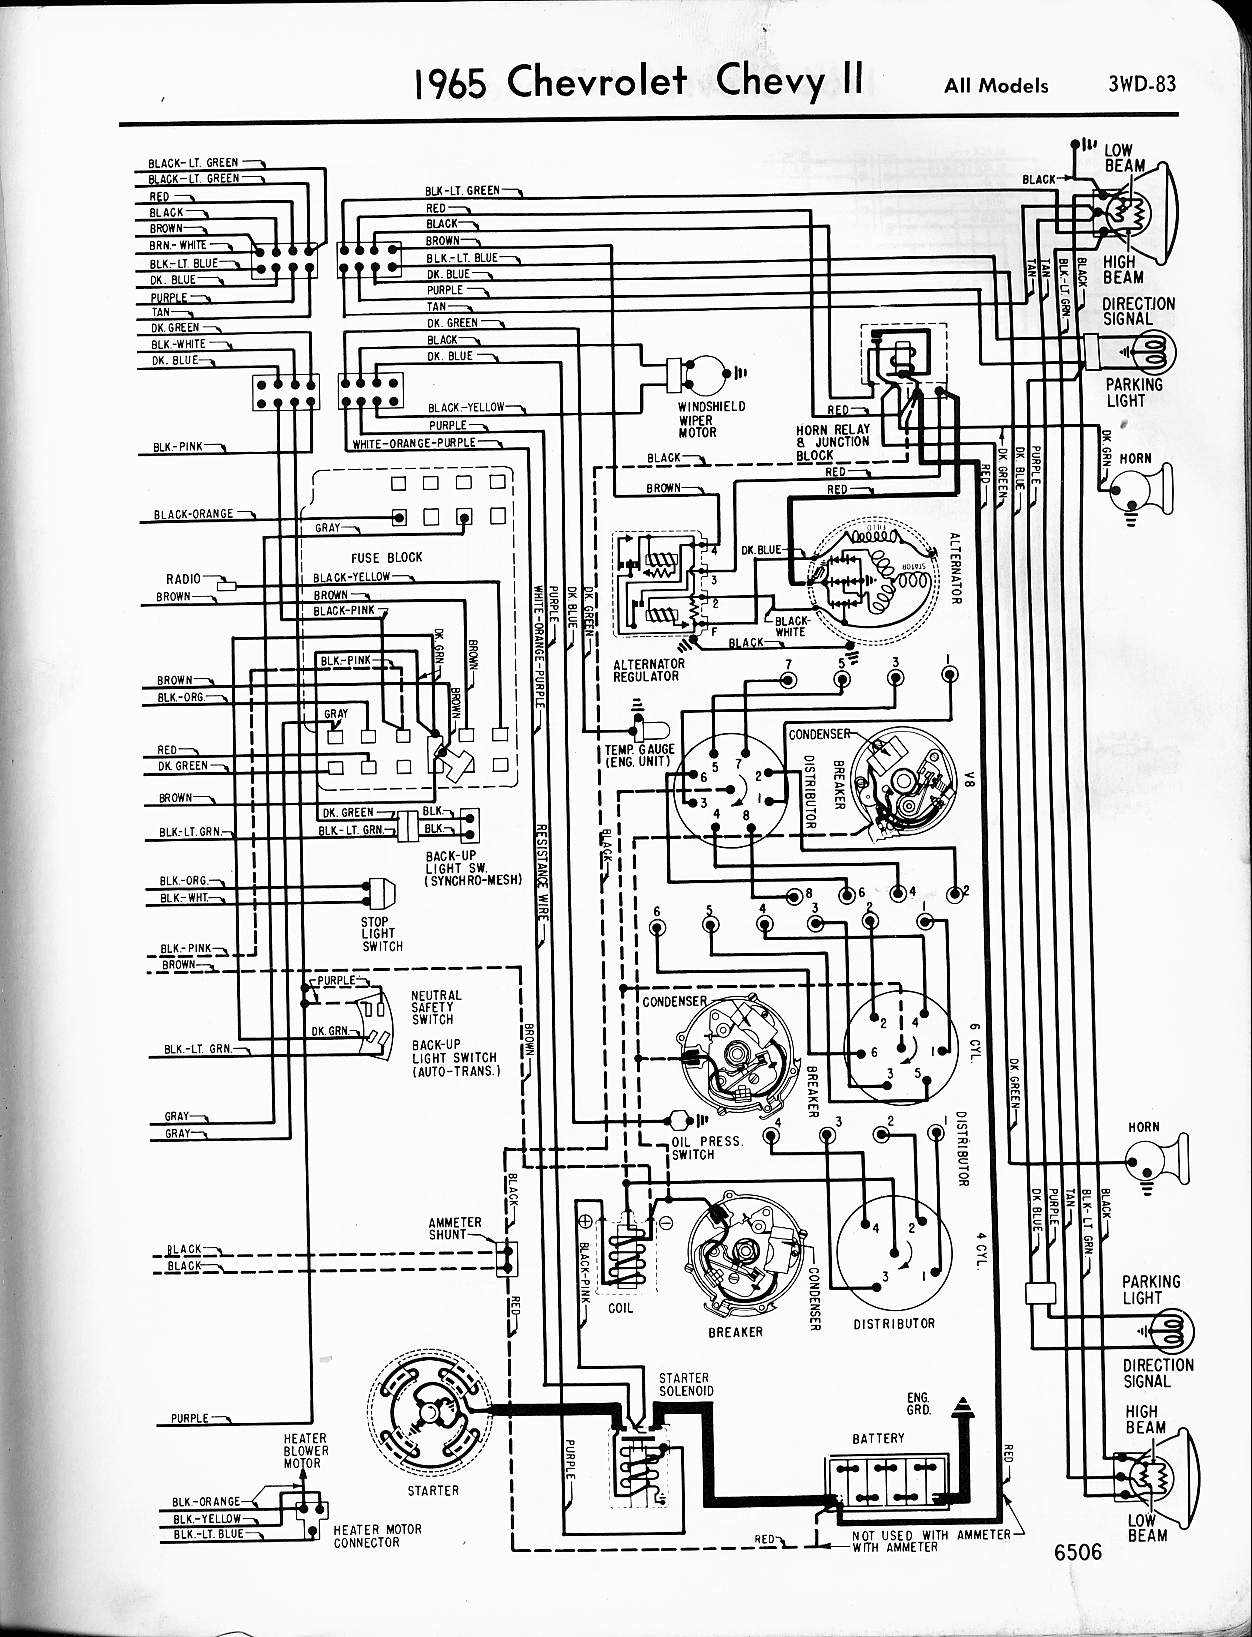 1973 Nova Ignition Wiring Diagram - House Wiring Diagram Symbols •